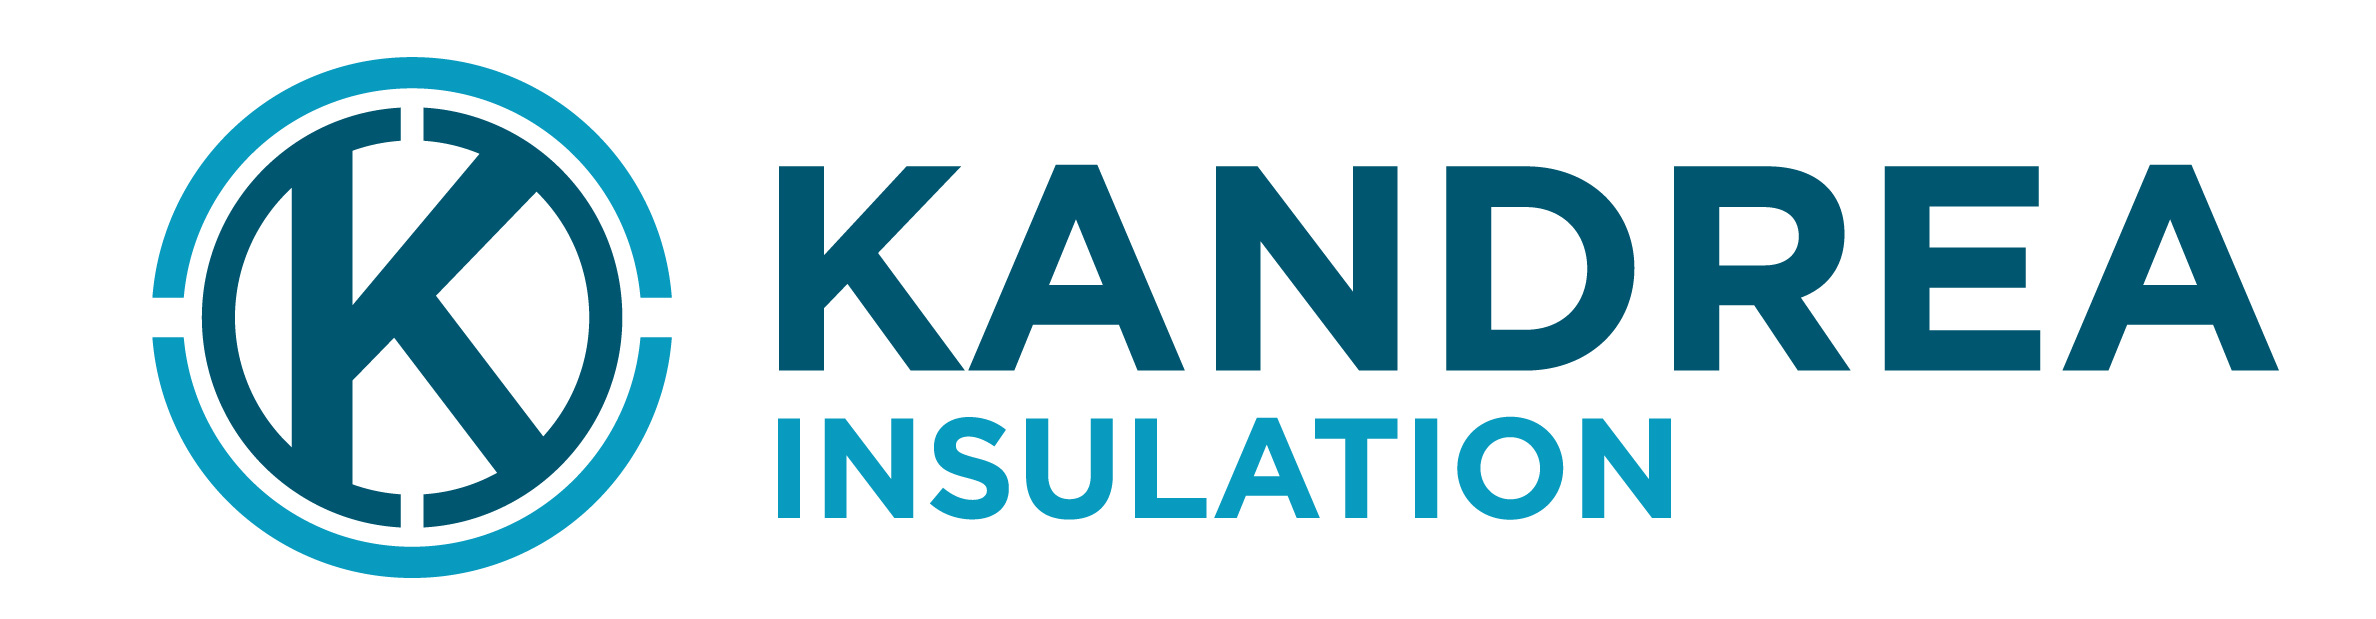 Kandrea Insulation